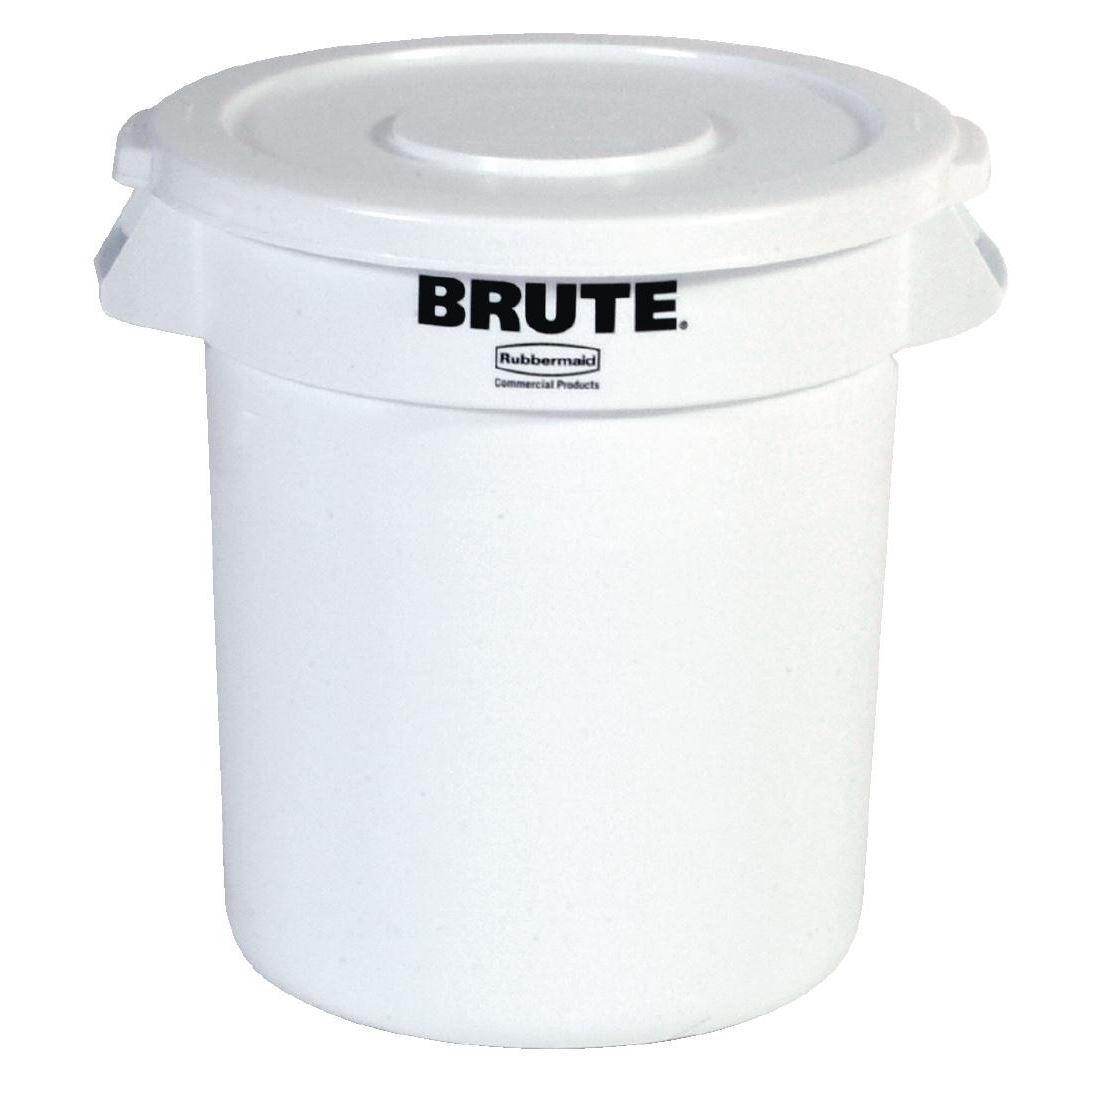 Rubbermaid Round Brute Container In White With Handles On